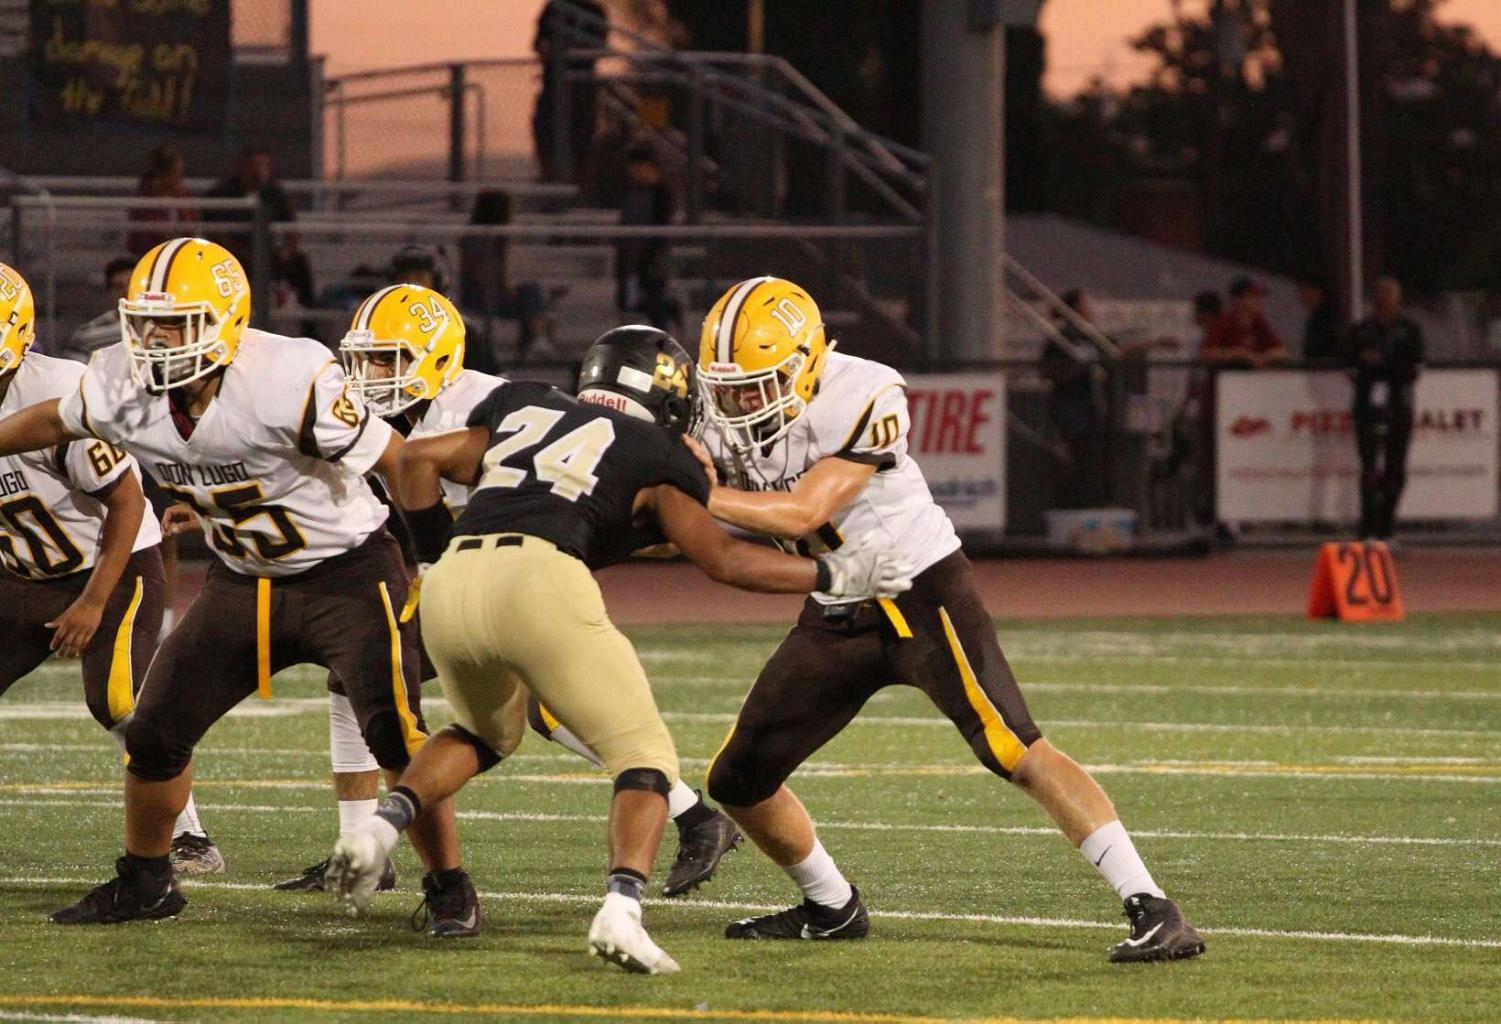 Stephen Cabrera (#10) doing his job as a Defensive Lineman. (Anthony Luna)